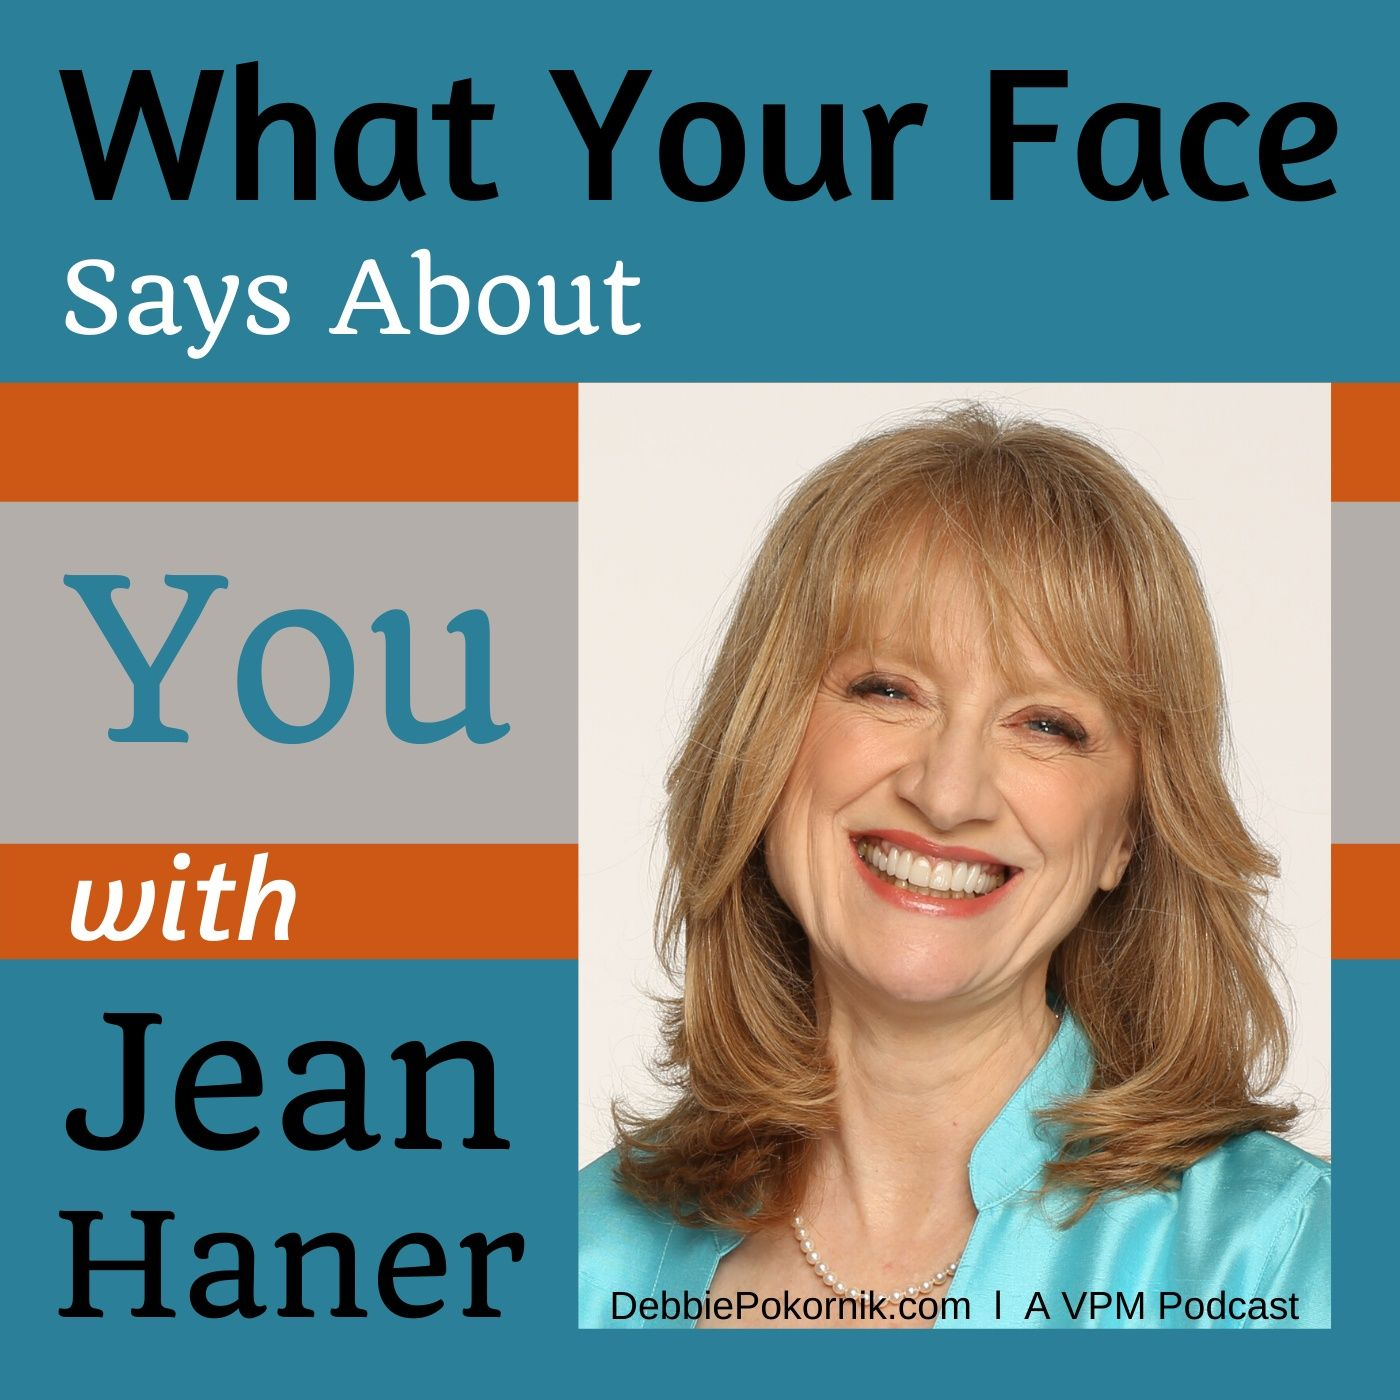 What Your Face Says About You with Jean Haner